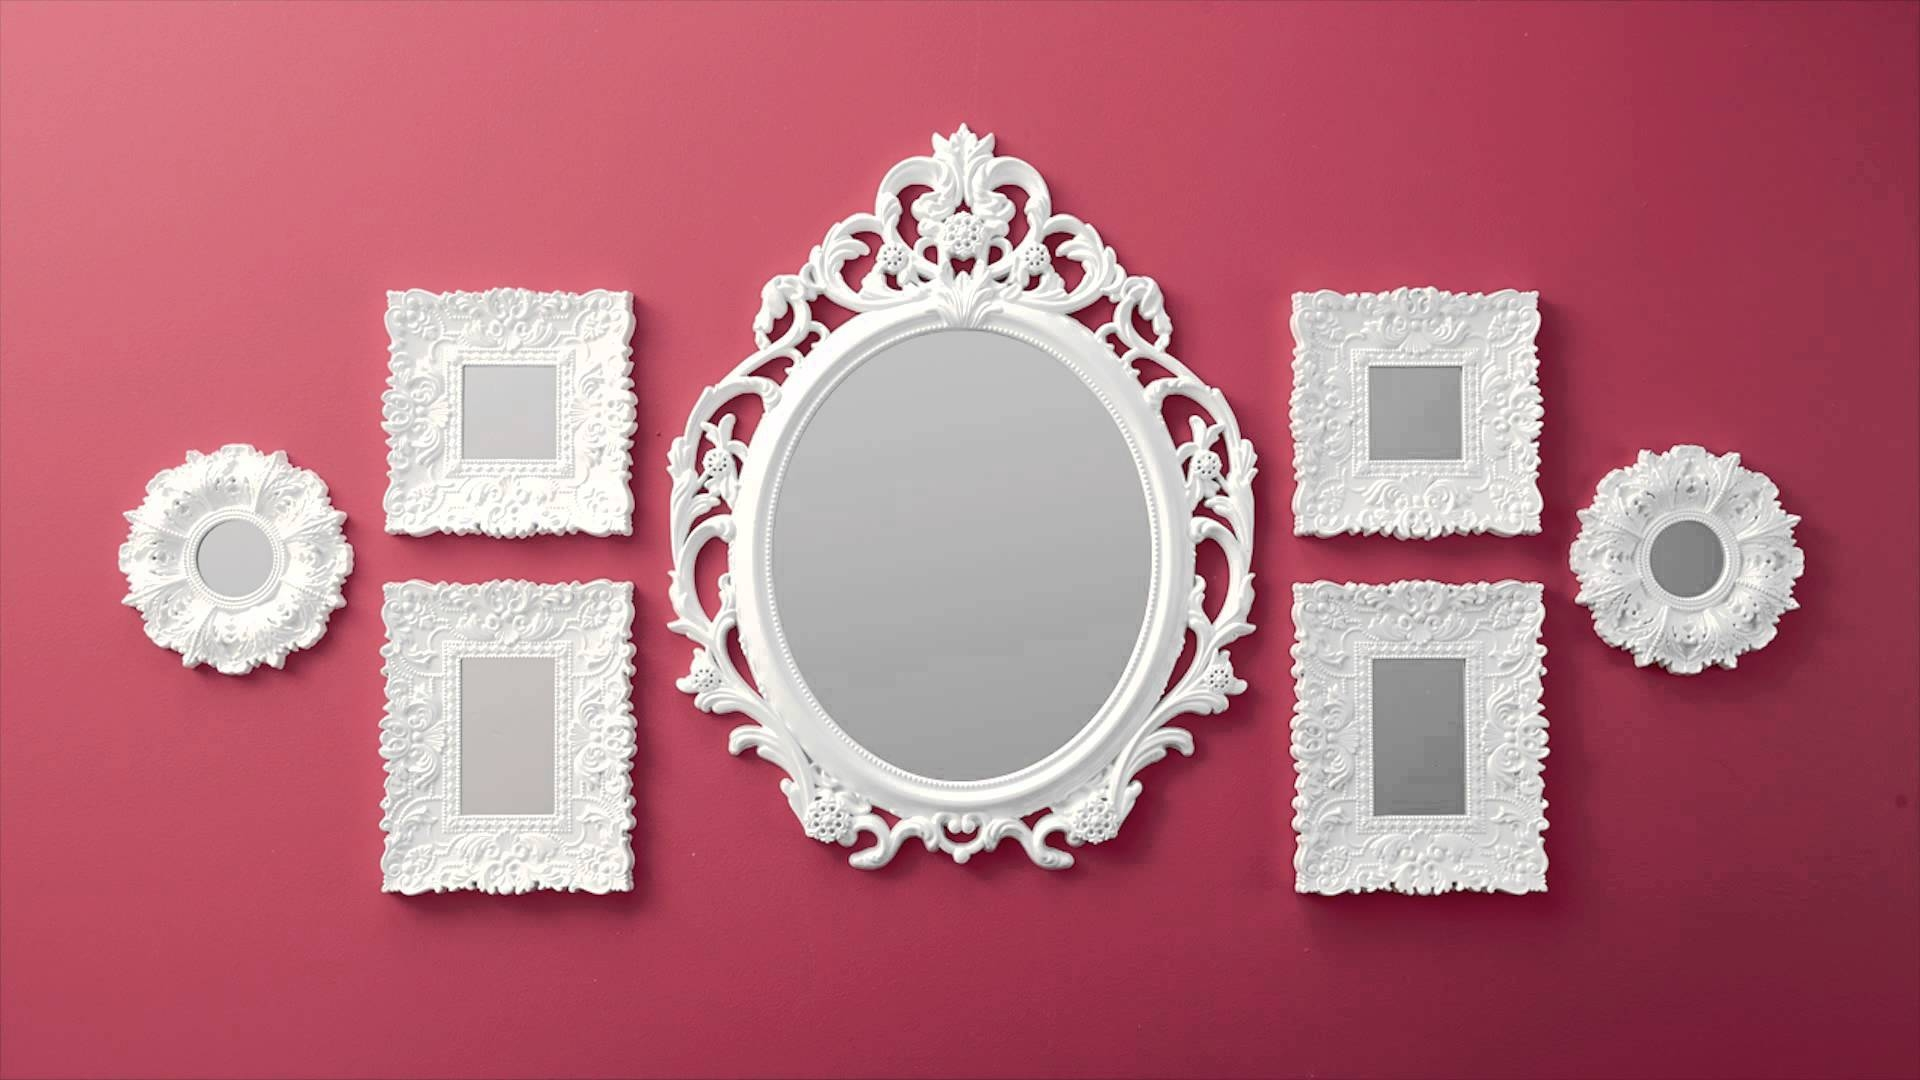 Dancing Mirrors From Better Homes And Gardens At Walmart! - Youtube regarding White Baroque Mirrors (Image 12 of 25)